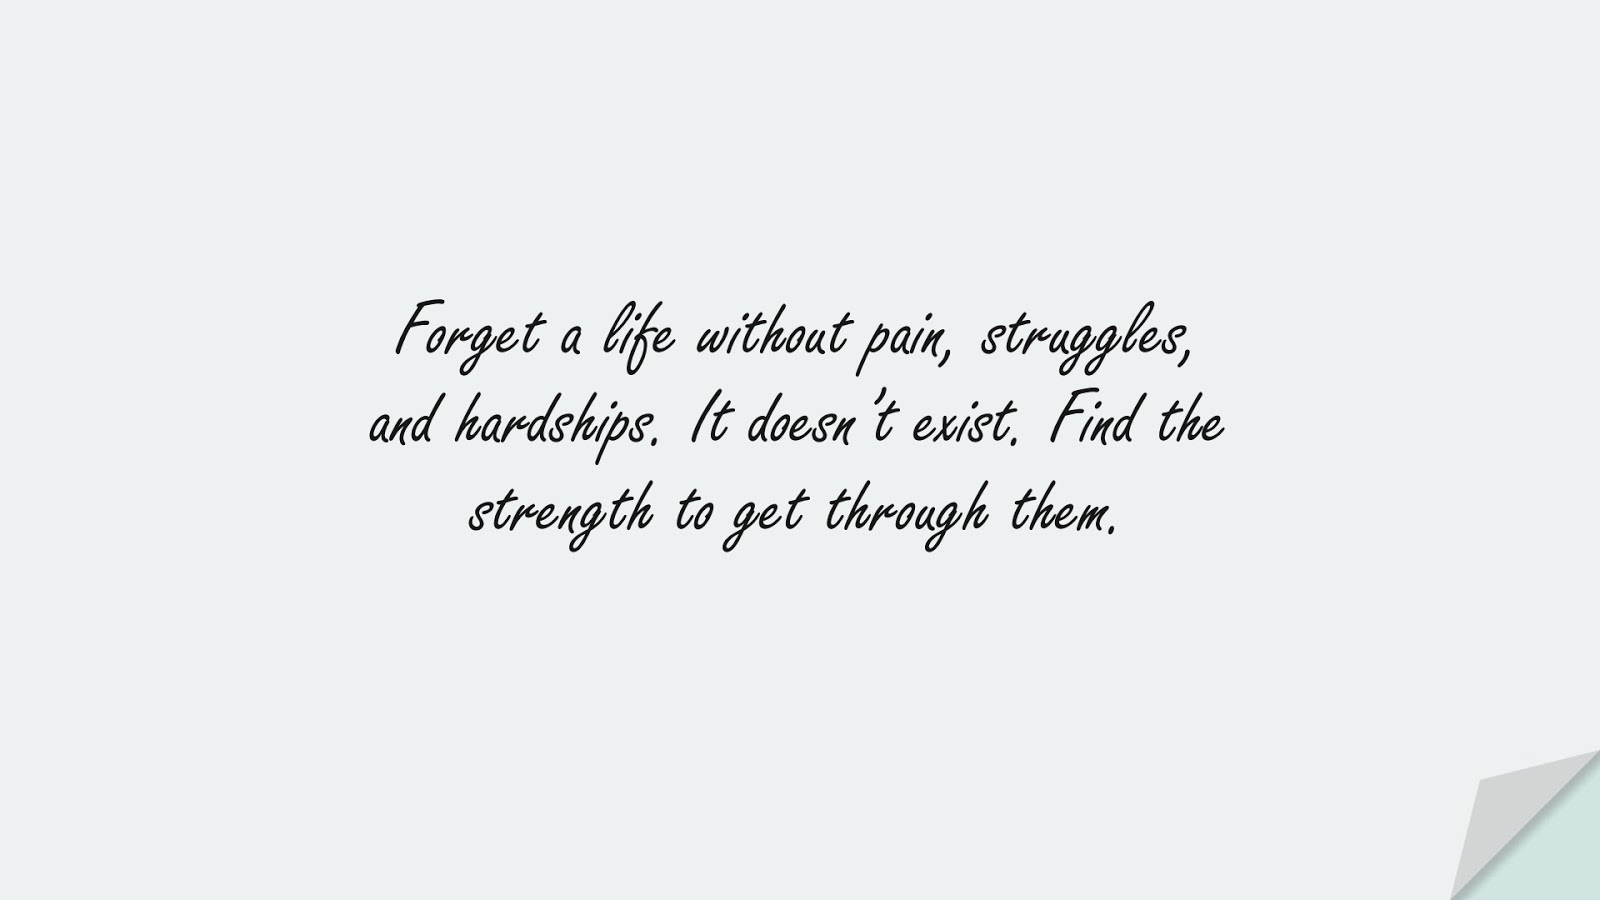 Forget a life without pain, struggles, and hardships. It doesn't exist. Find the strength to get through them.FALSE